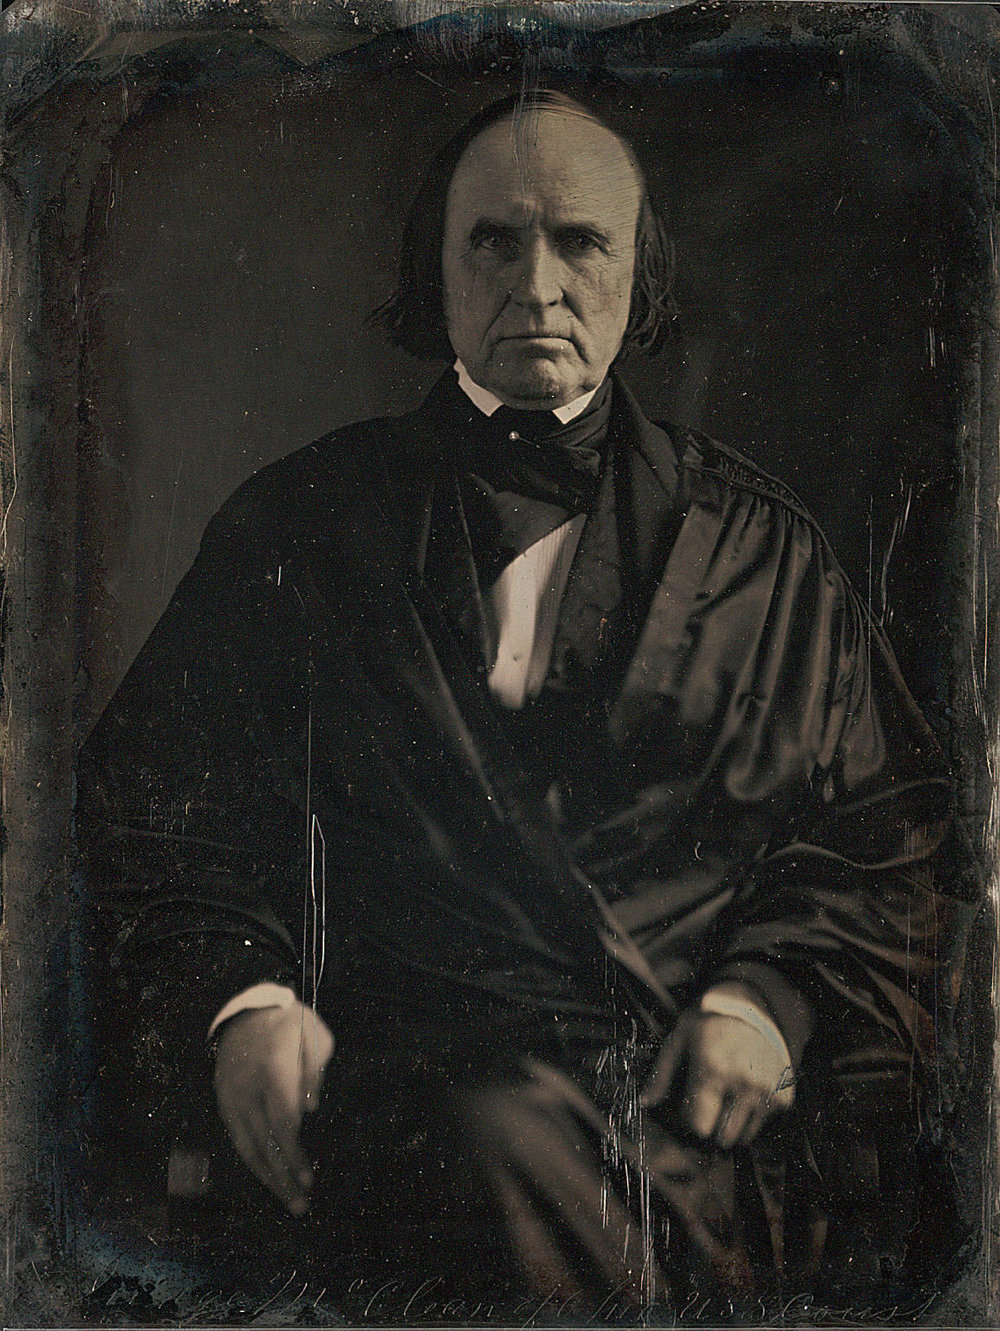 Justice McLean, pictured in an 1849 daguerreotype. Photo courtesy Matthew Brady.